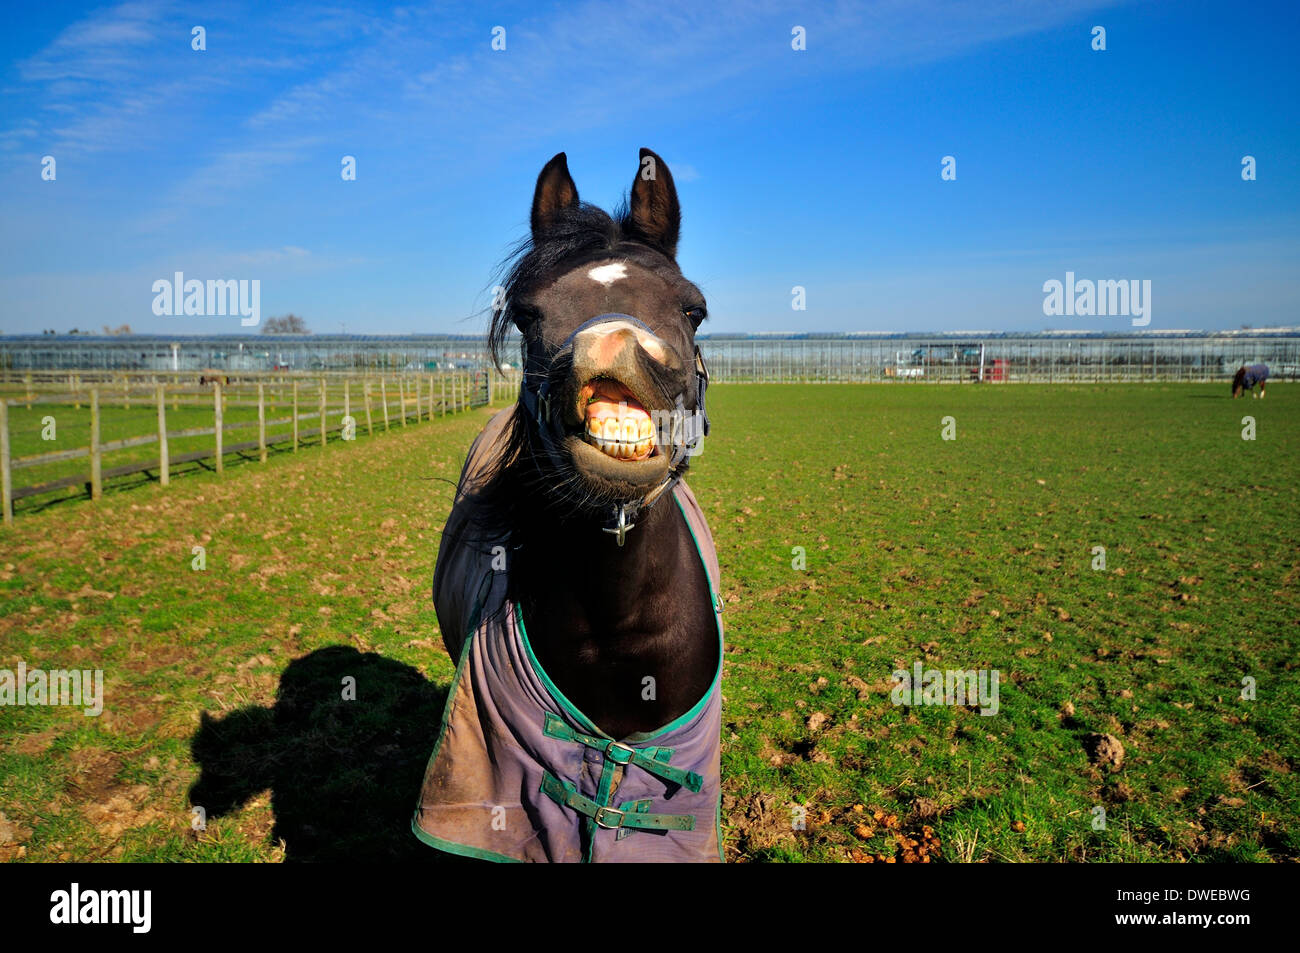 Black and white Arab horse with lip raised showing its teeth - Stock Image